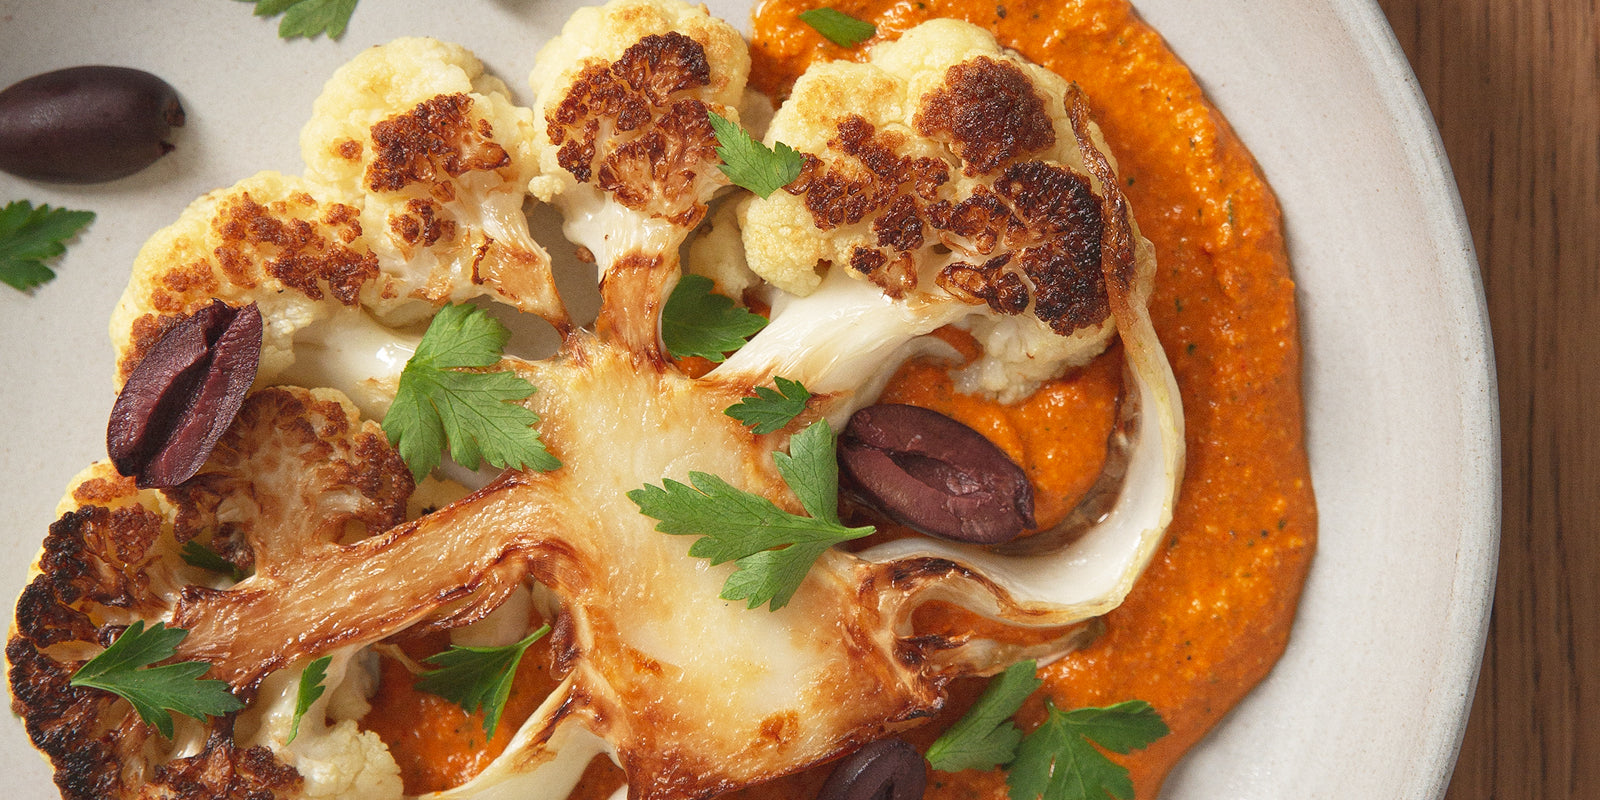 Cauliflower Steak & Protein Romesco Sauce